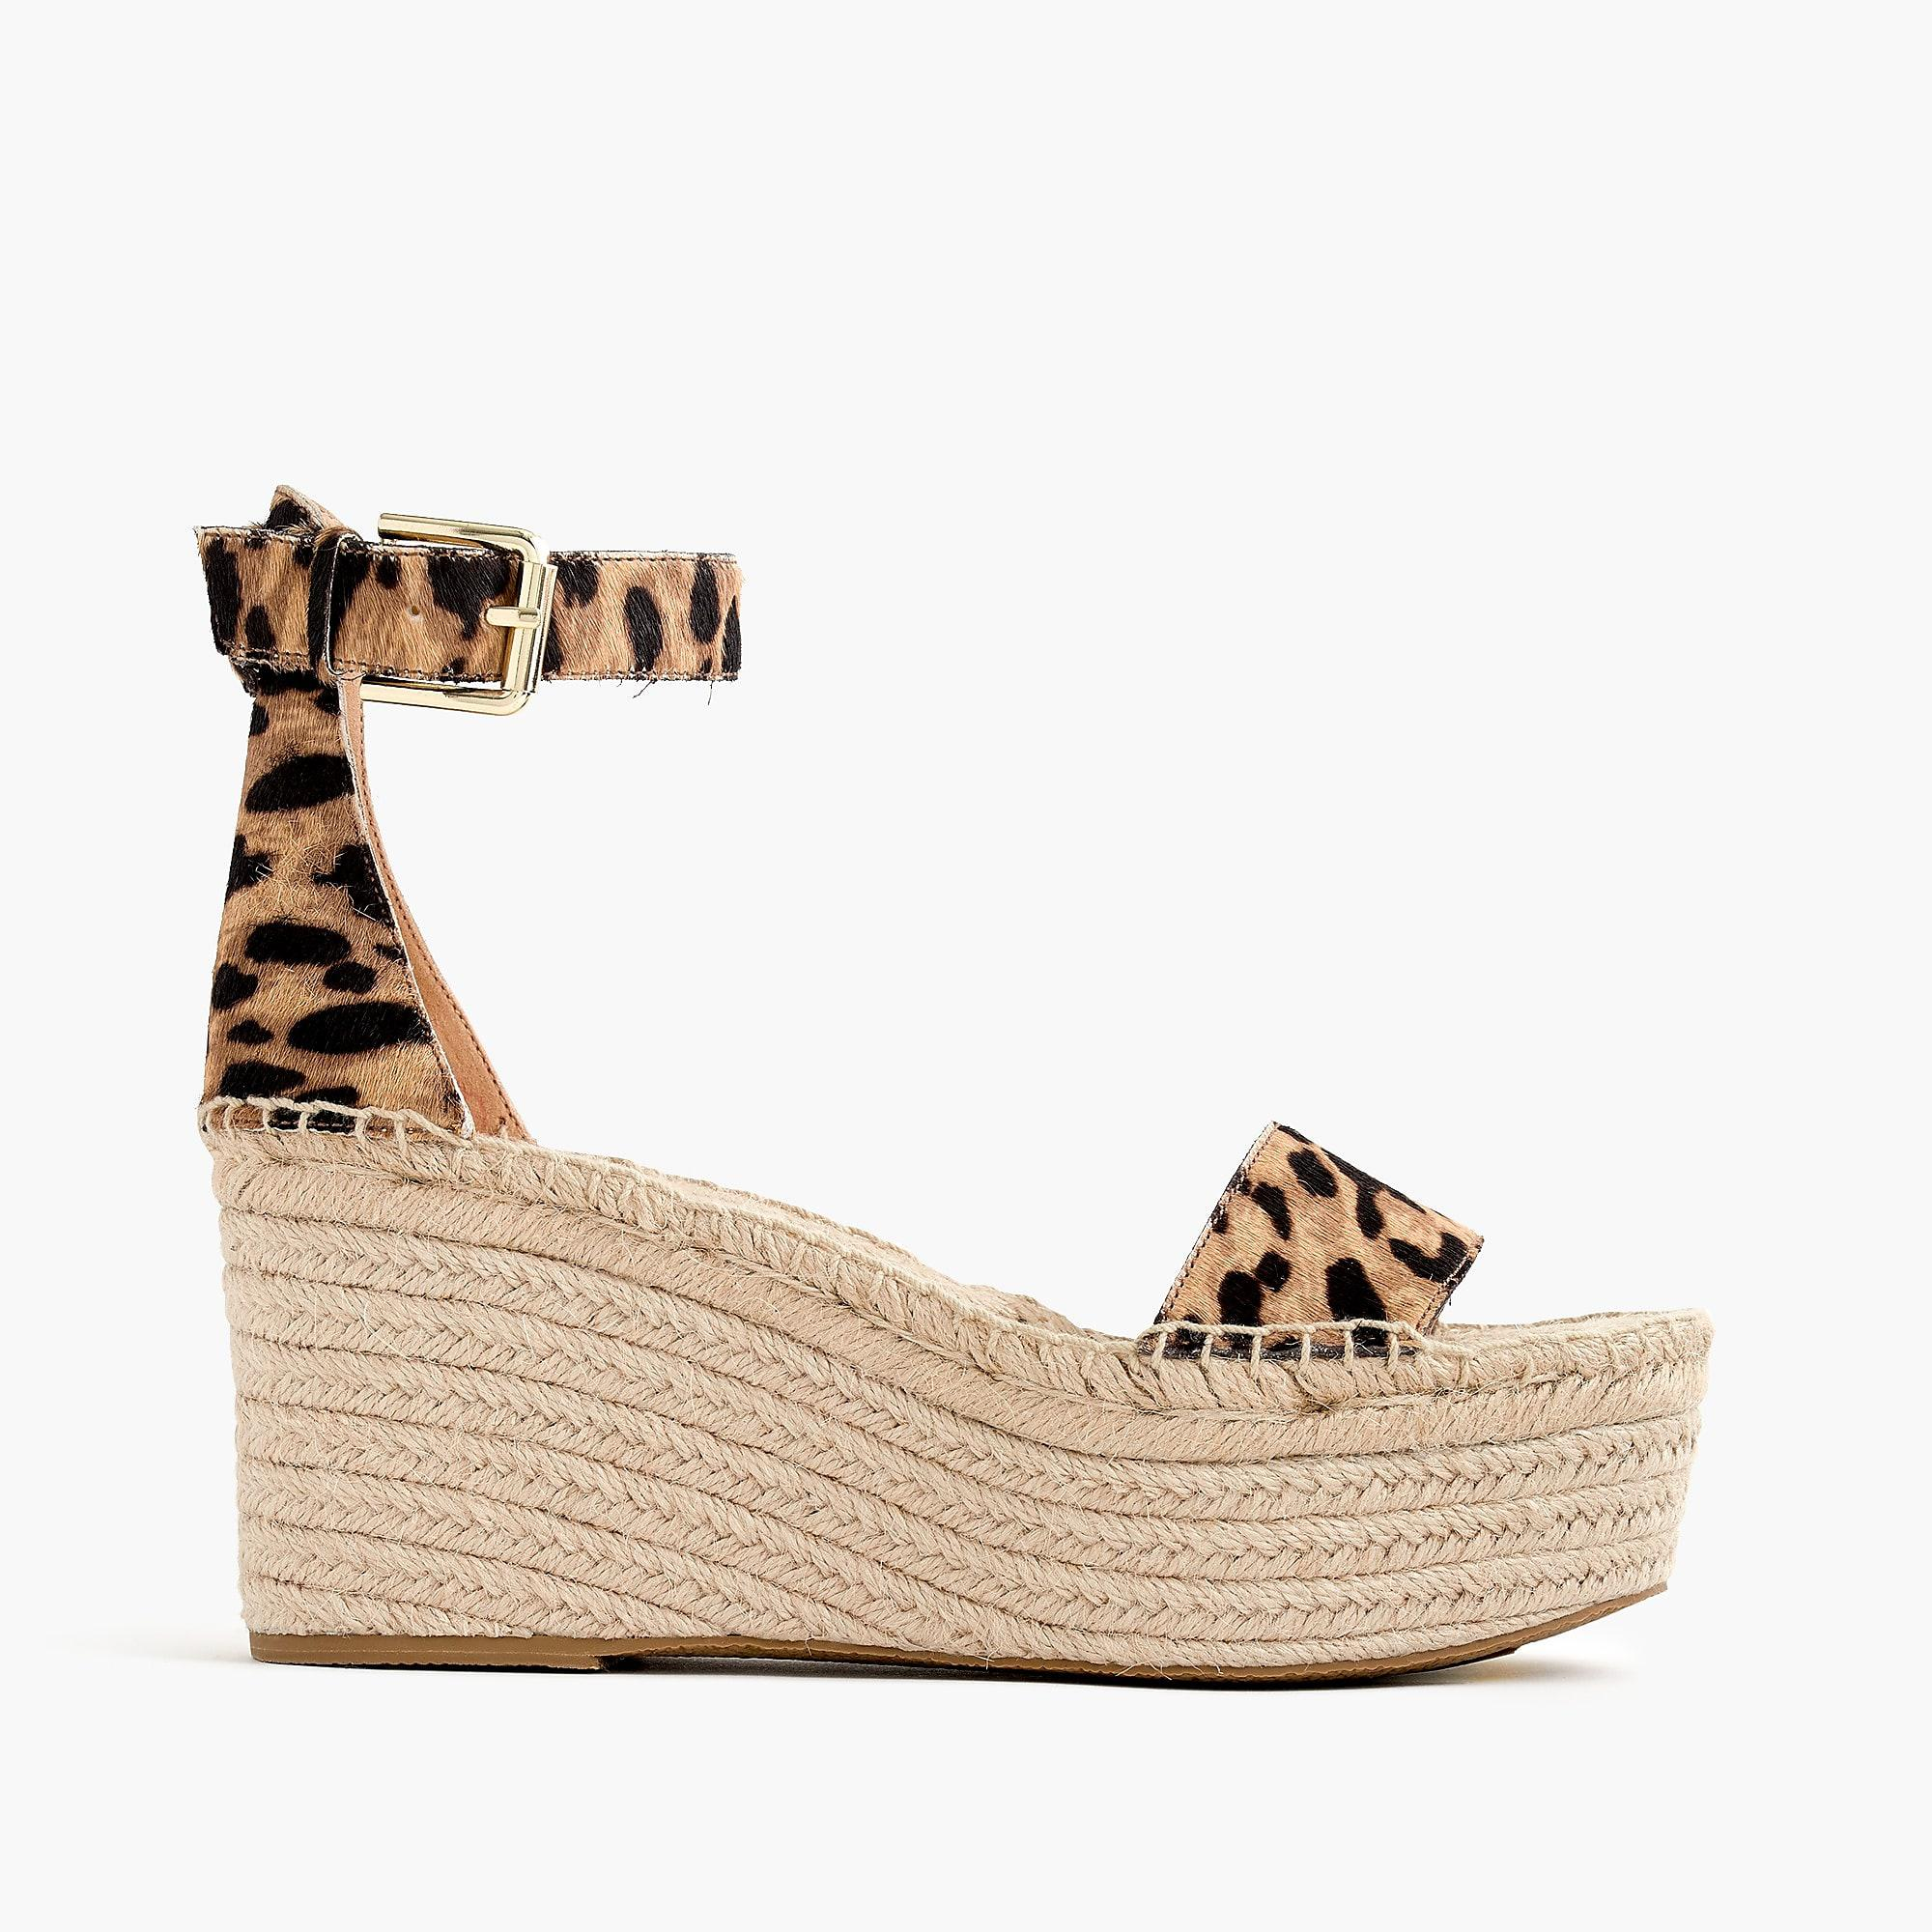 J.CREW PLATFORM LEOPARD - High heeled sandals - hazelnut/black 4zWWwkAZx